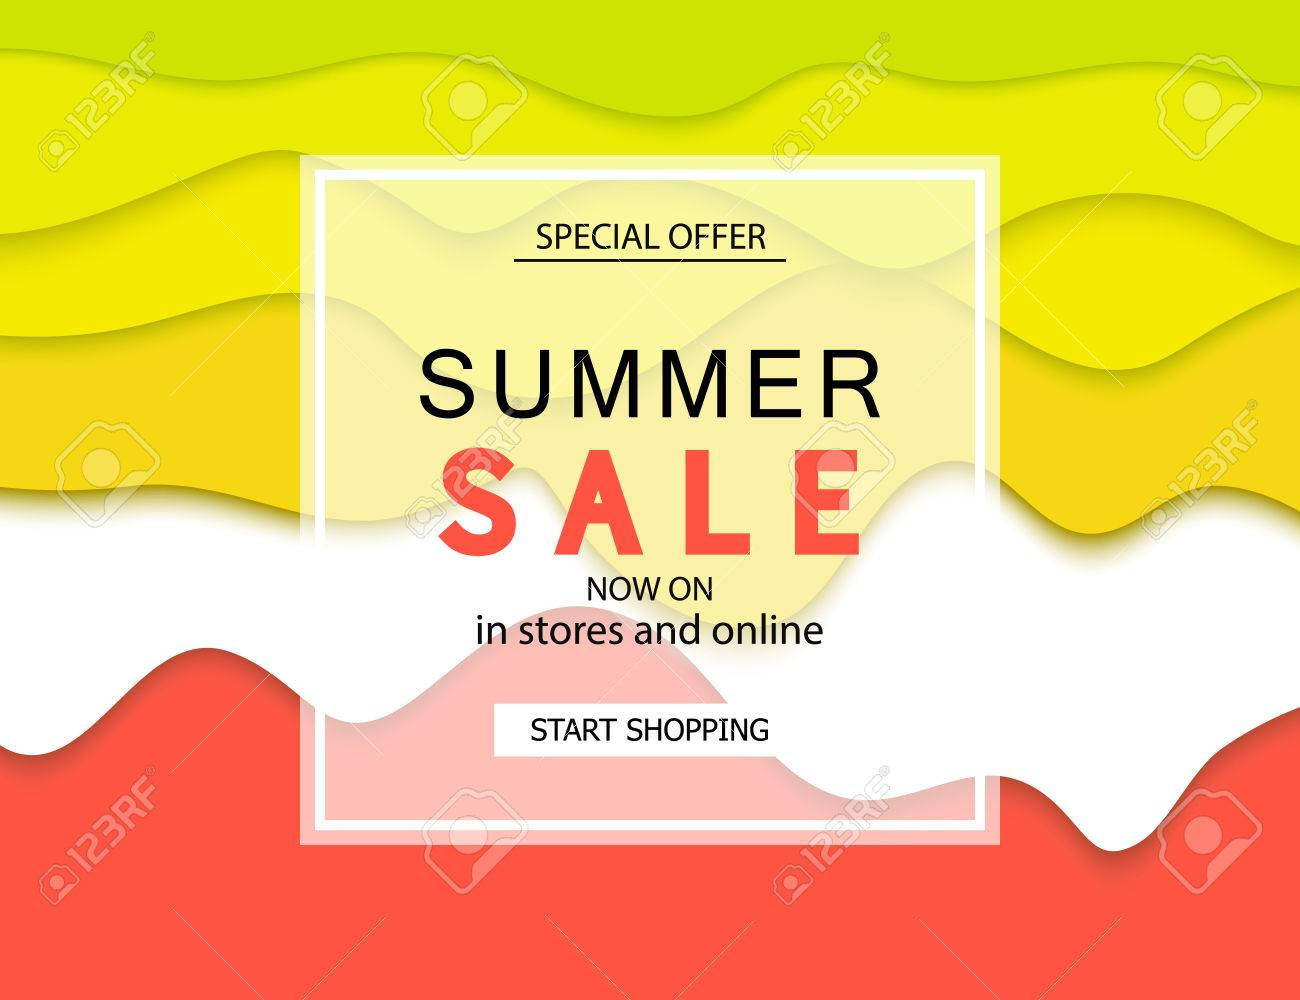 Summer sale banner vector illustration eps 10 format template summer sale banner vector illustration eps 10 format template banners wallpaper stopboris Images